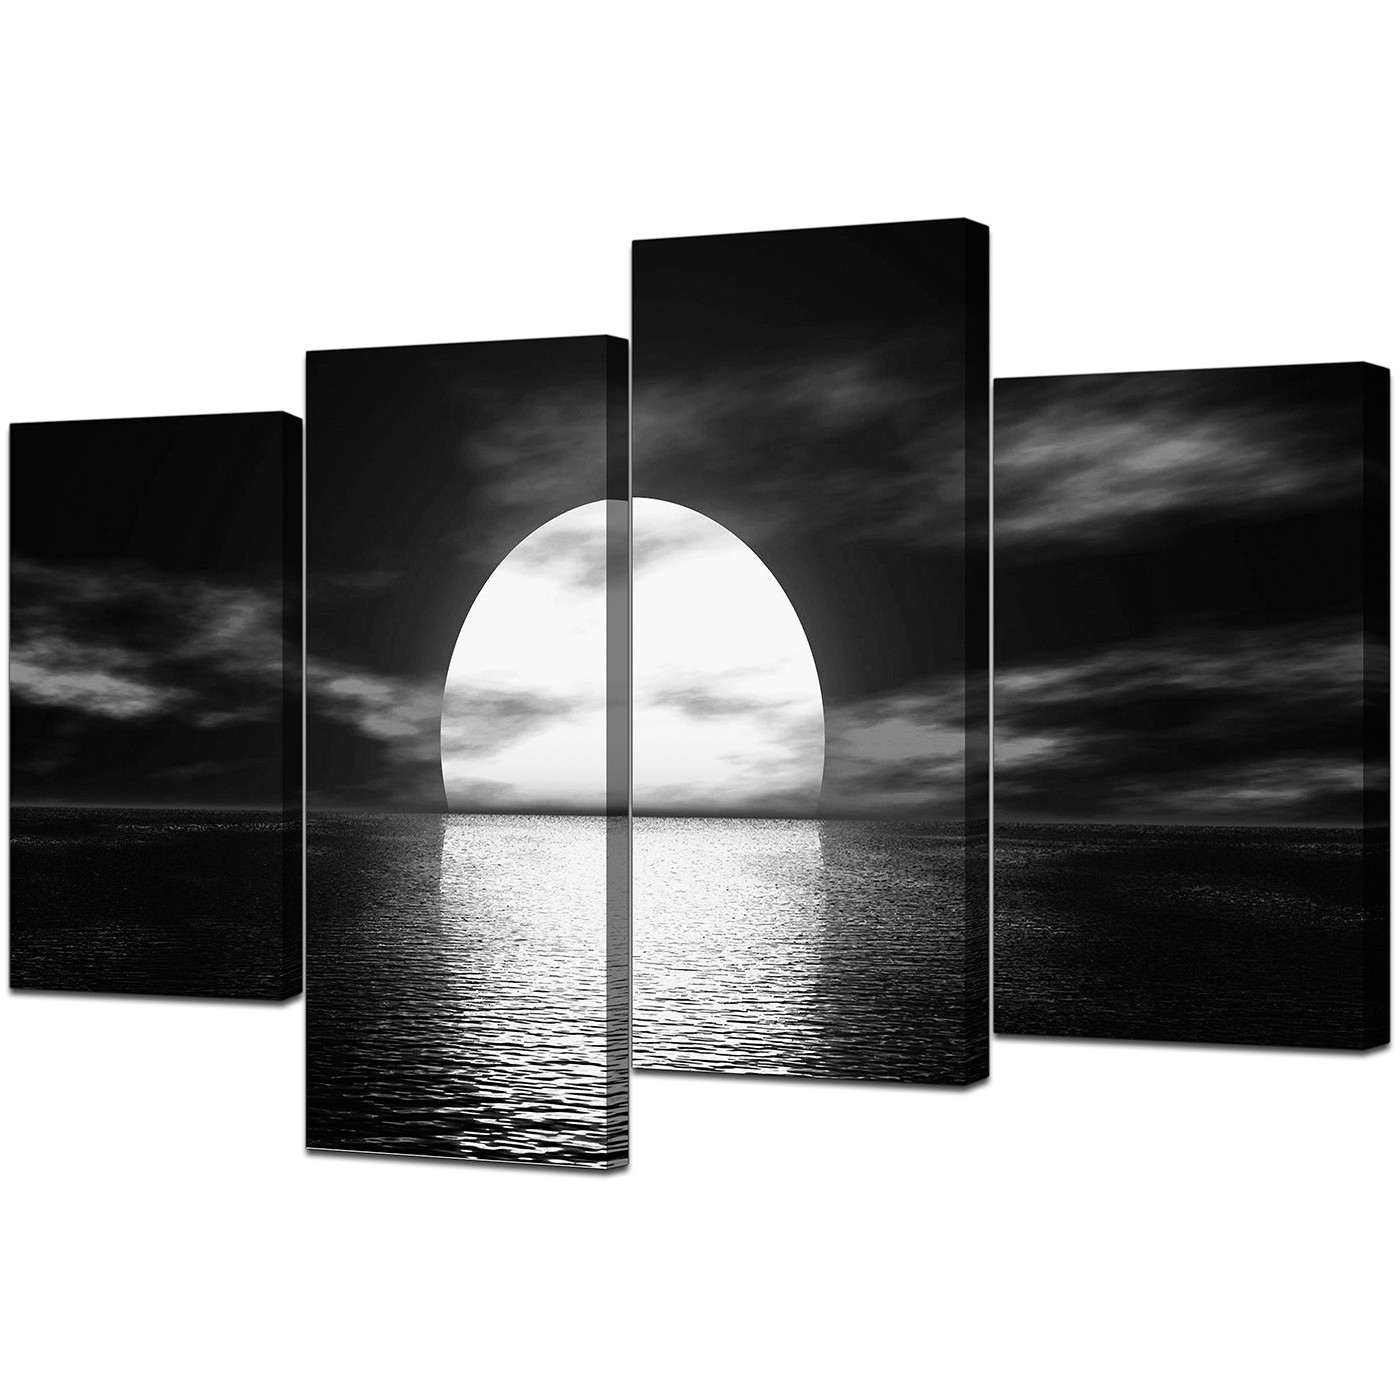 Large Framed Canvas Wall Art With Fashionable Black And White Canvas – Ocean Sunset Canvas Wall Art (View 12 of 15)